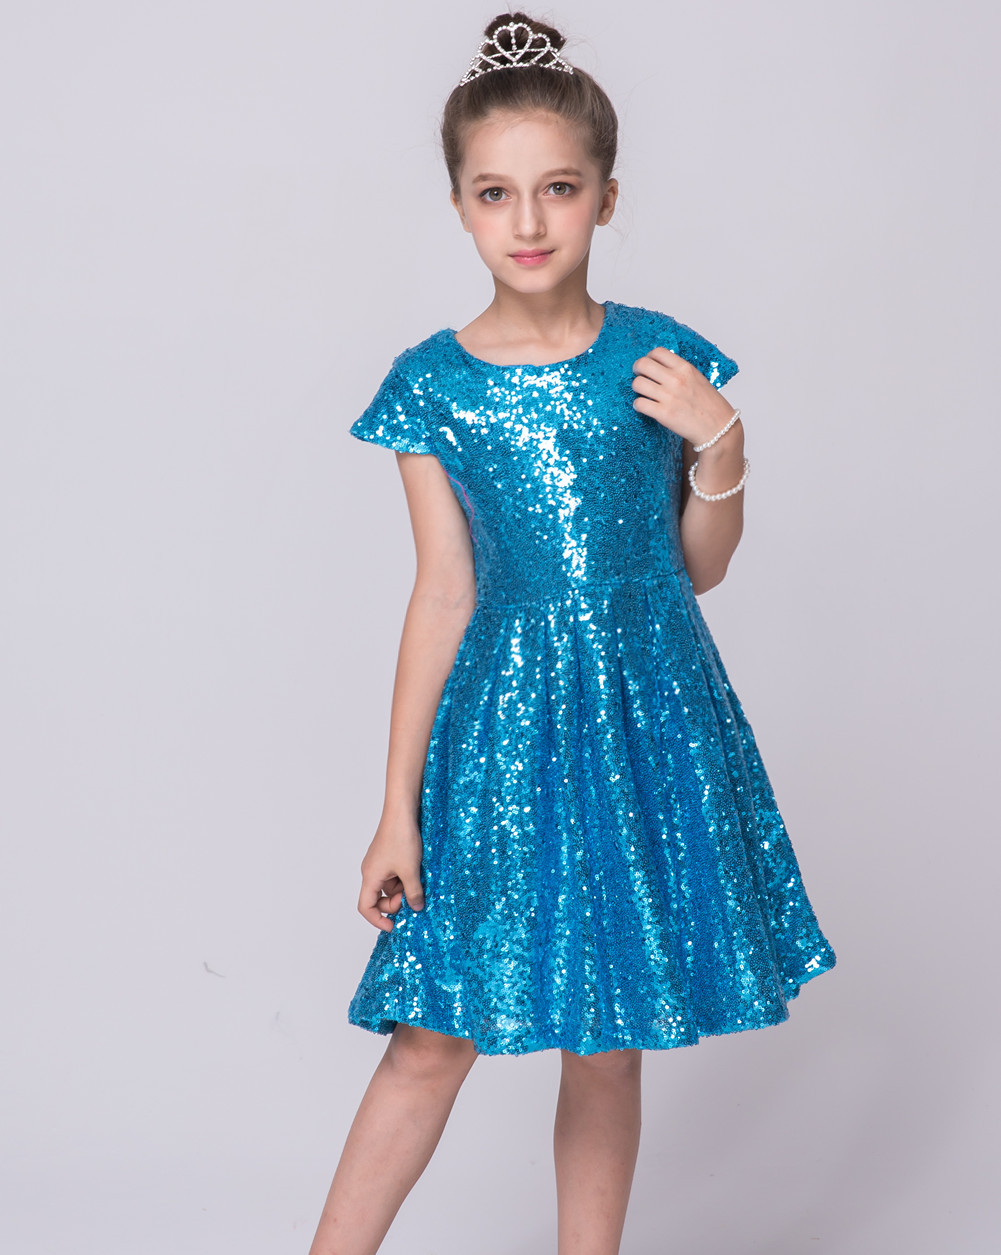 Funky Gold Party Dress Model - All Wedding Dresses - kreplicawatches.com